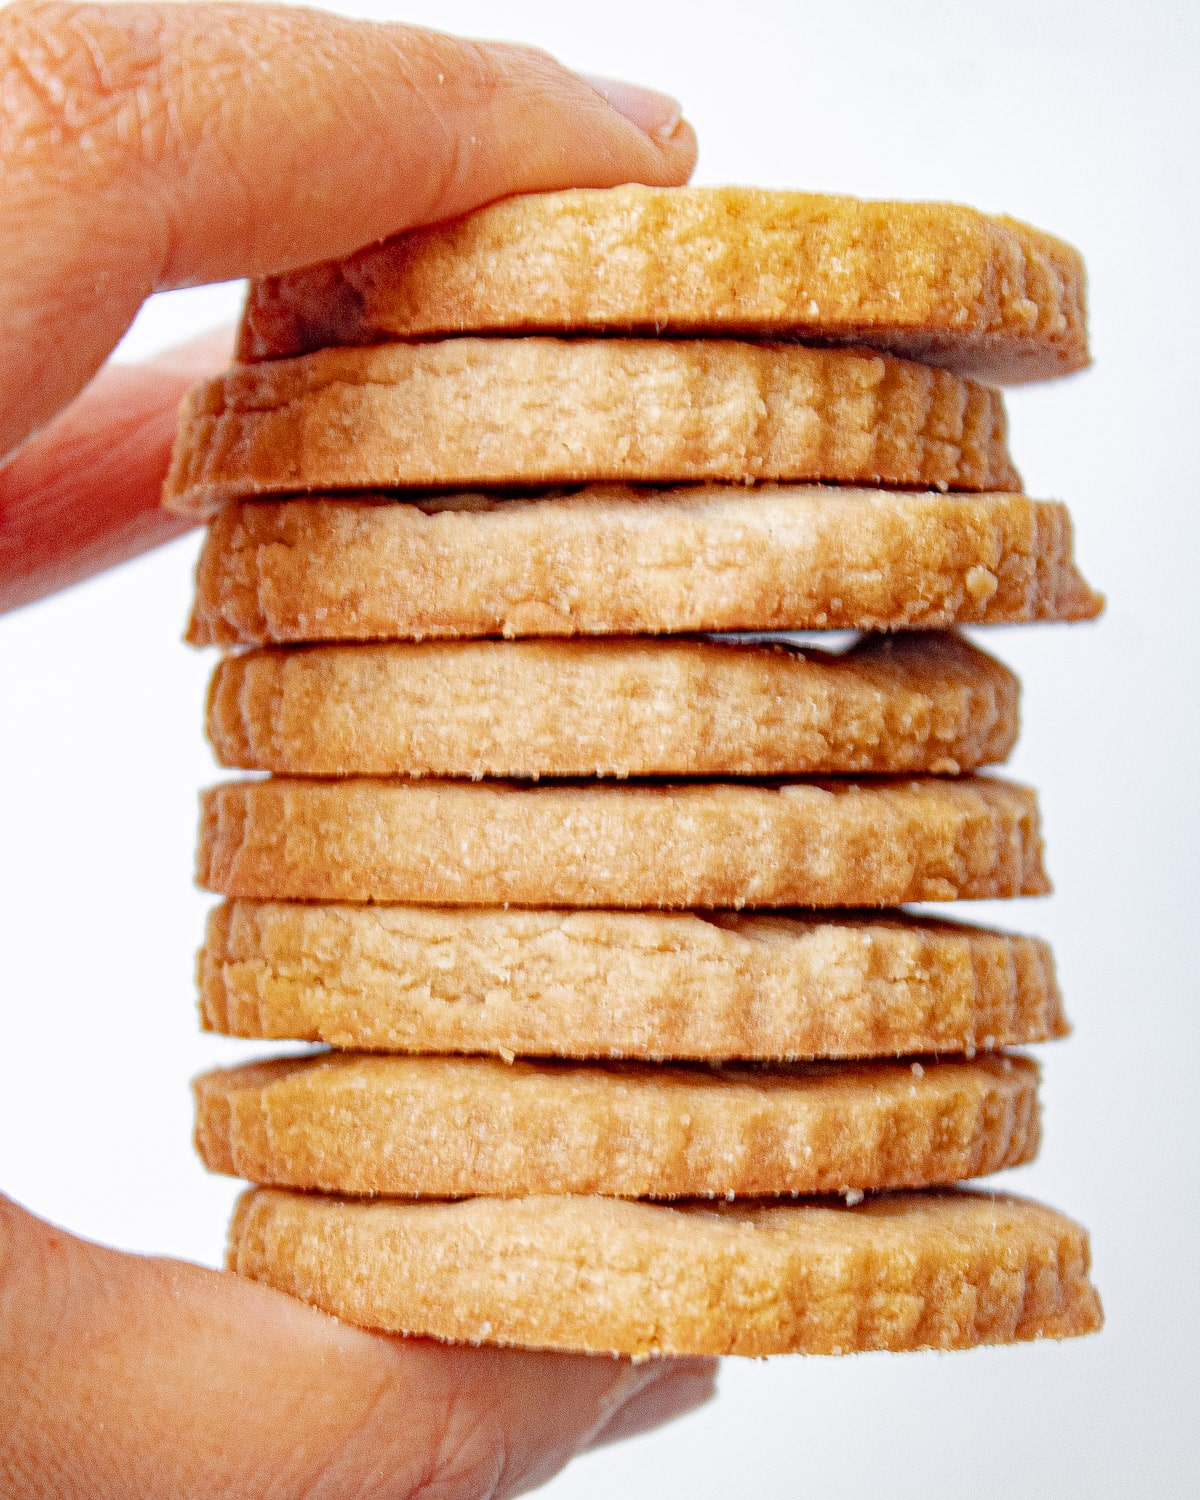 a hand holding a stack of brown sugar shortbread cookies